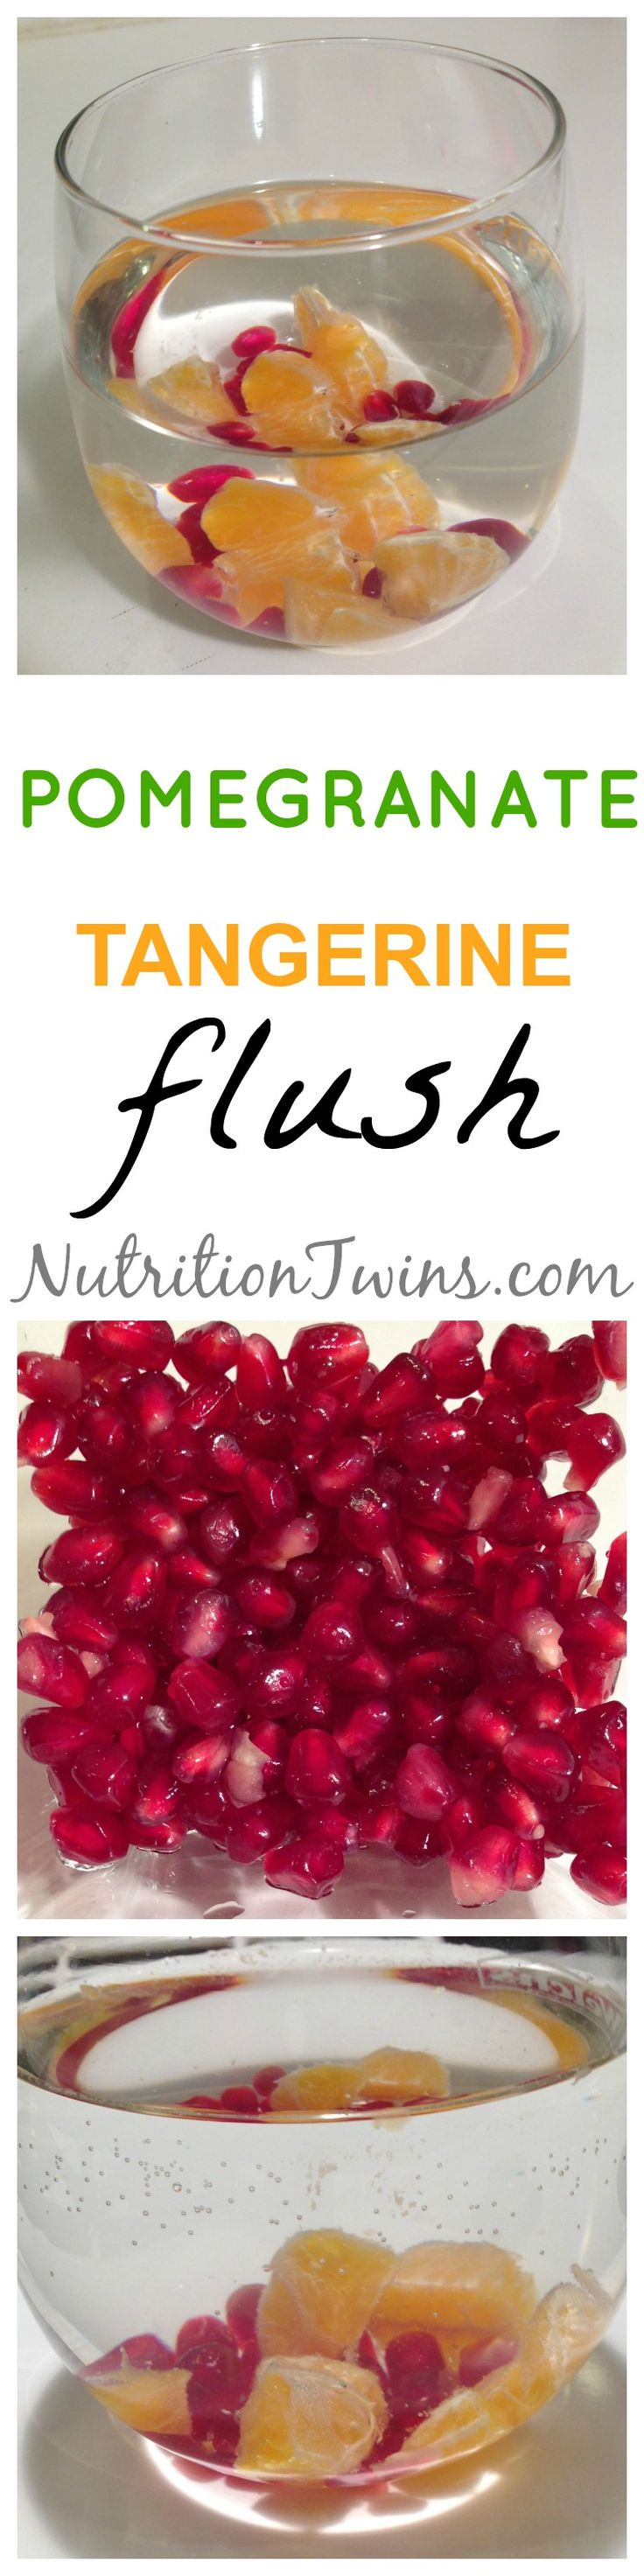 Pomegranate Tangerine Detox Flusher   Refreshing way to Flush Bloat & Restore Normal Fluid Balance   For MORE RECIPES please SIGN UP for our FREE NEWSLETTER www.NutritionTwins.com